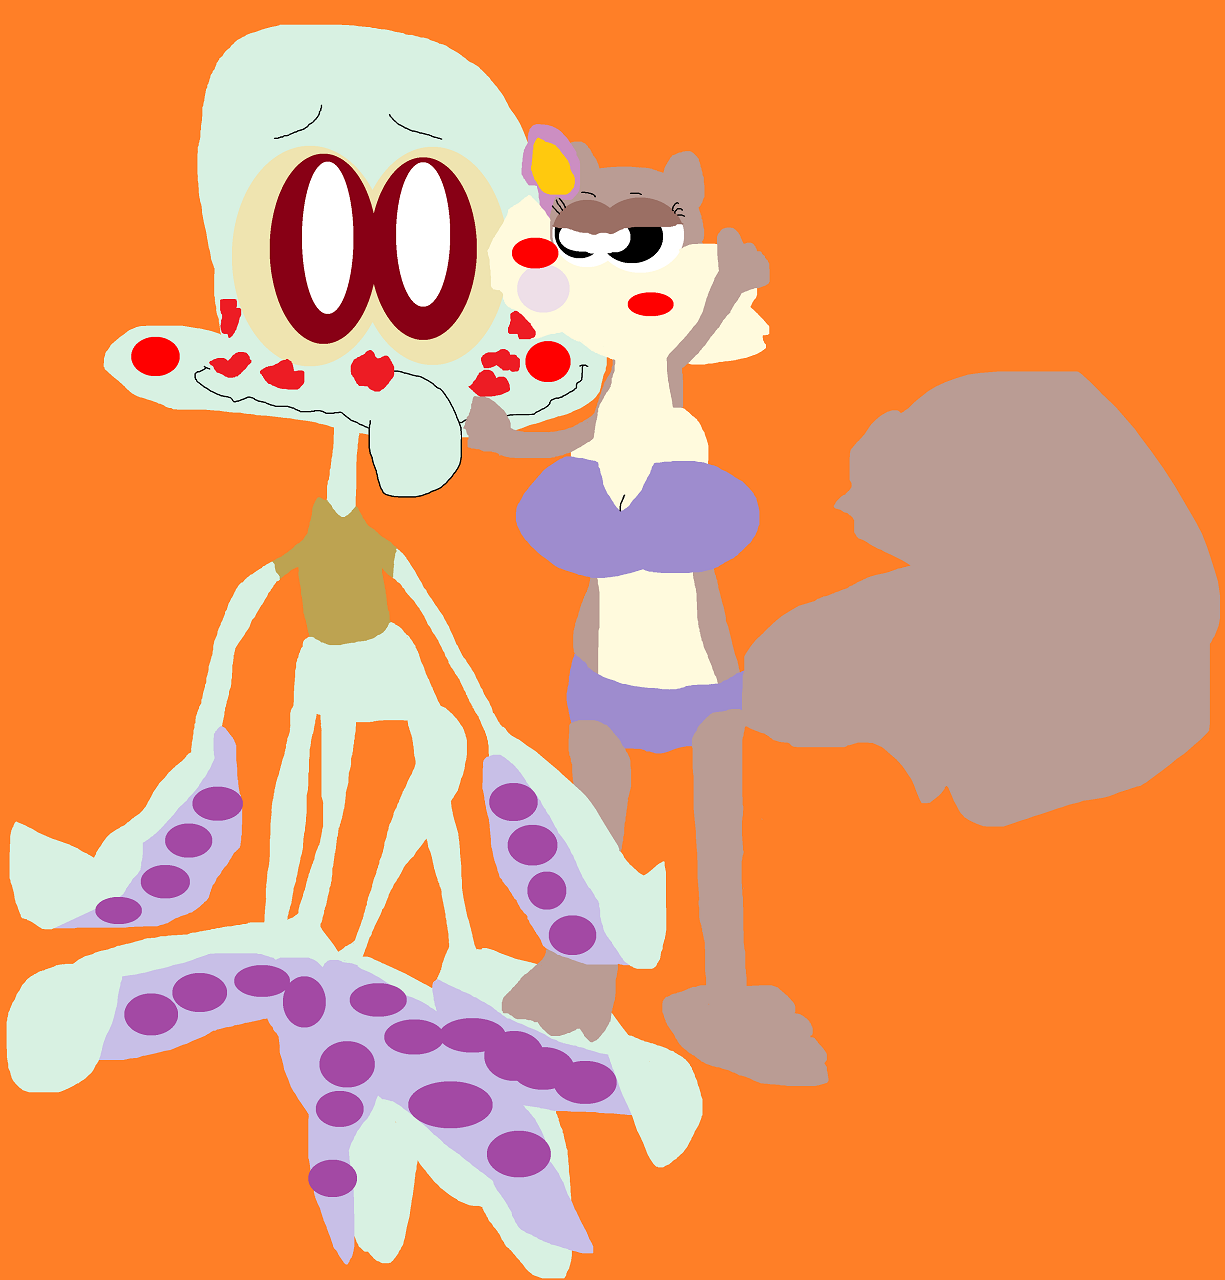 Sandy Smothering Squidward  With Kisses Request For sonokoa162 by Falconlobo